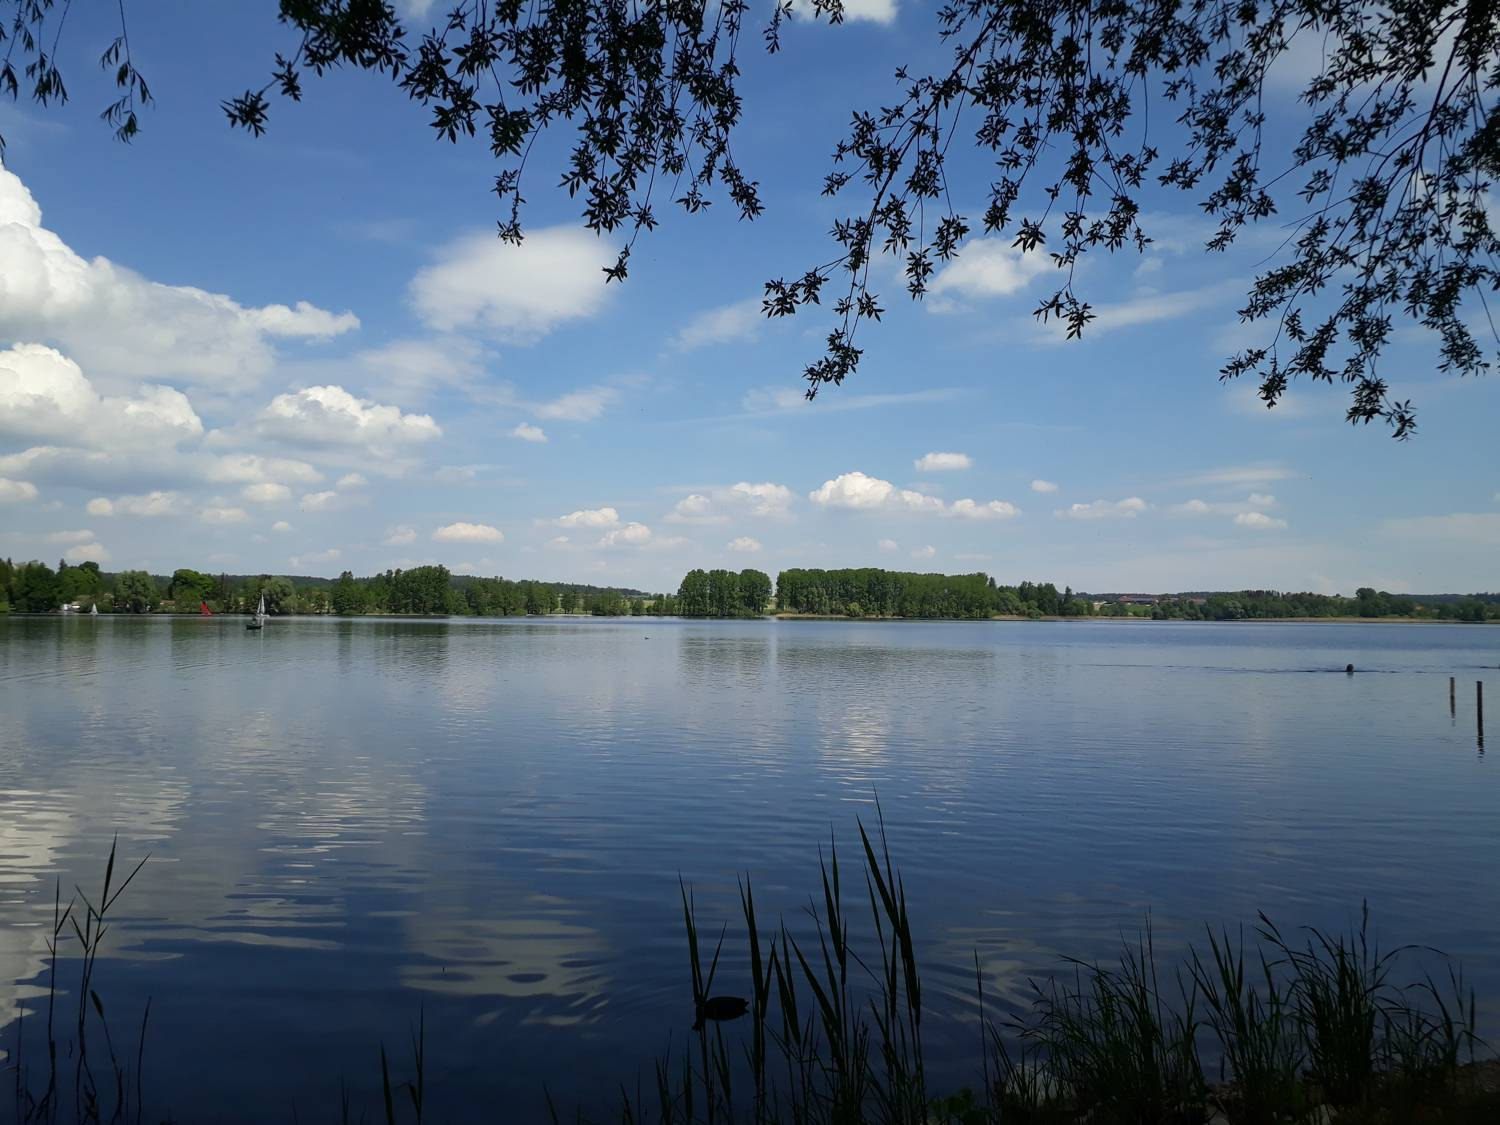 Morgenruhe am Waginger See